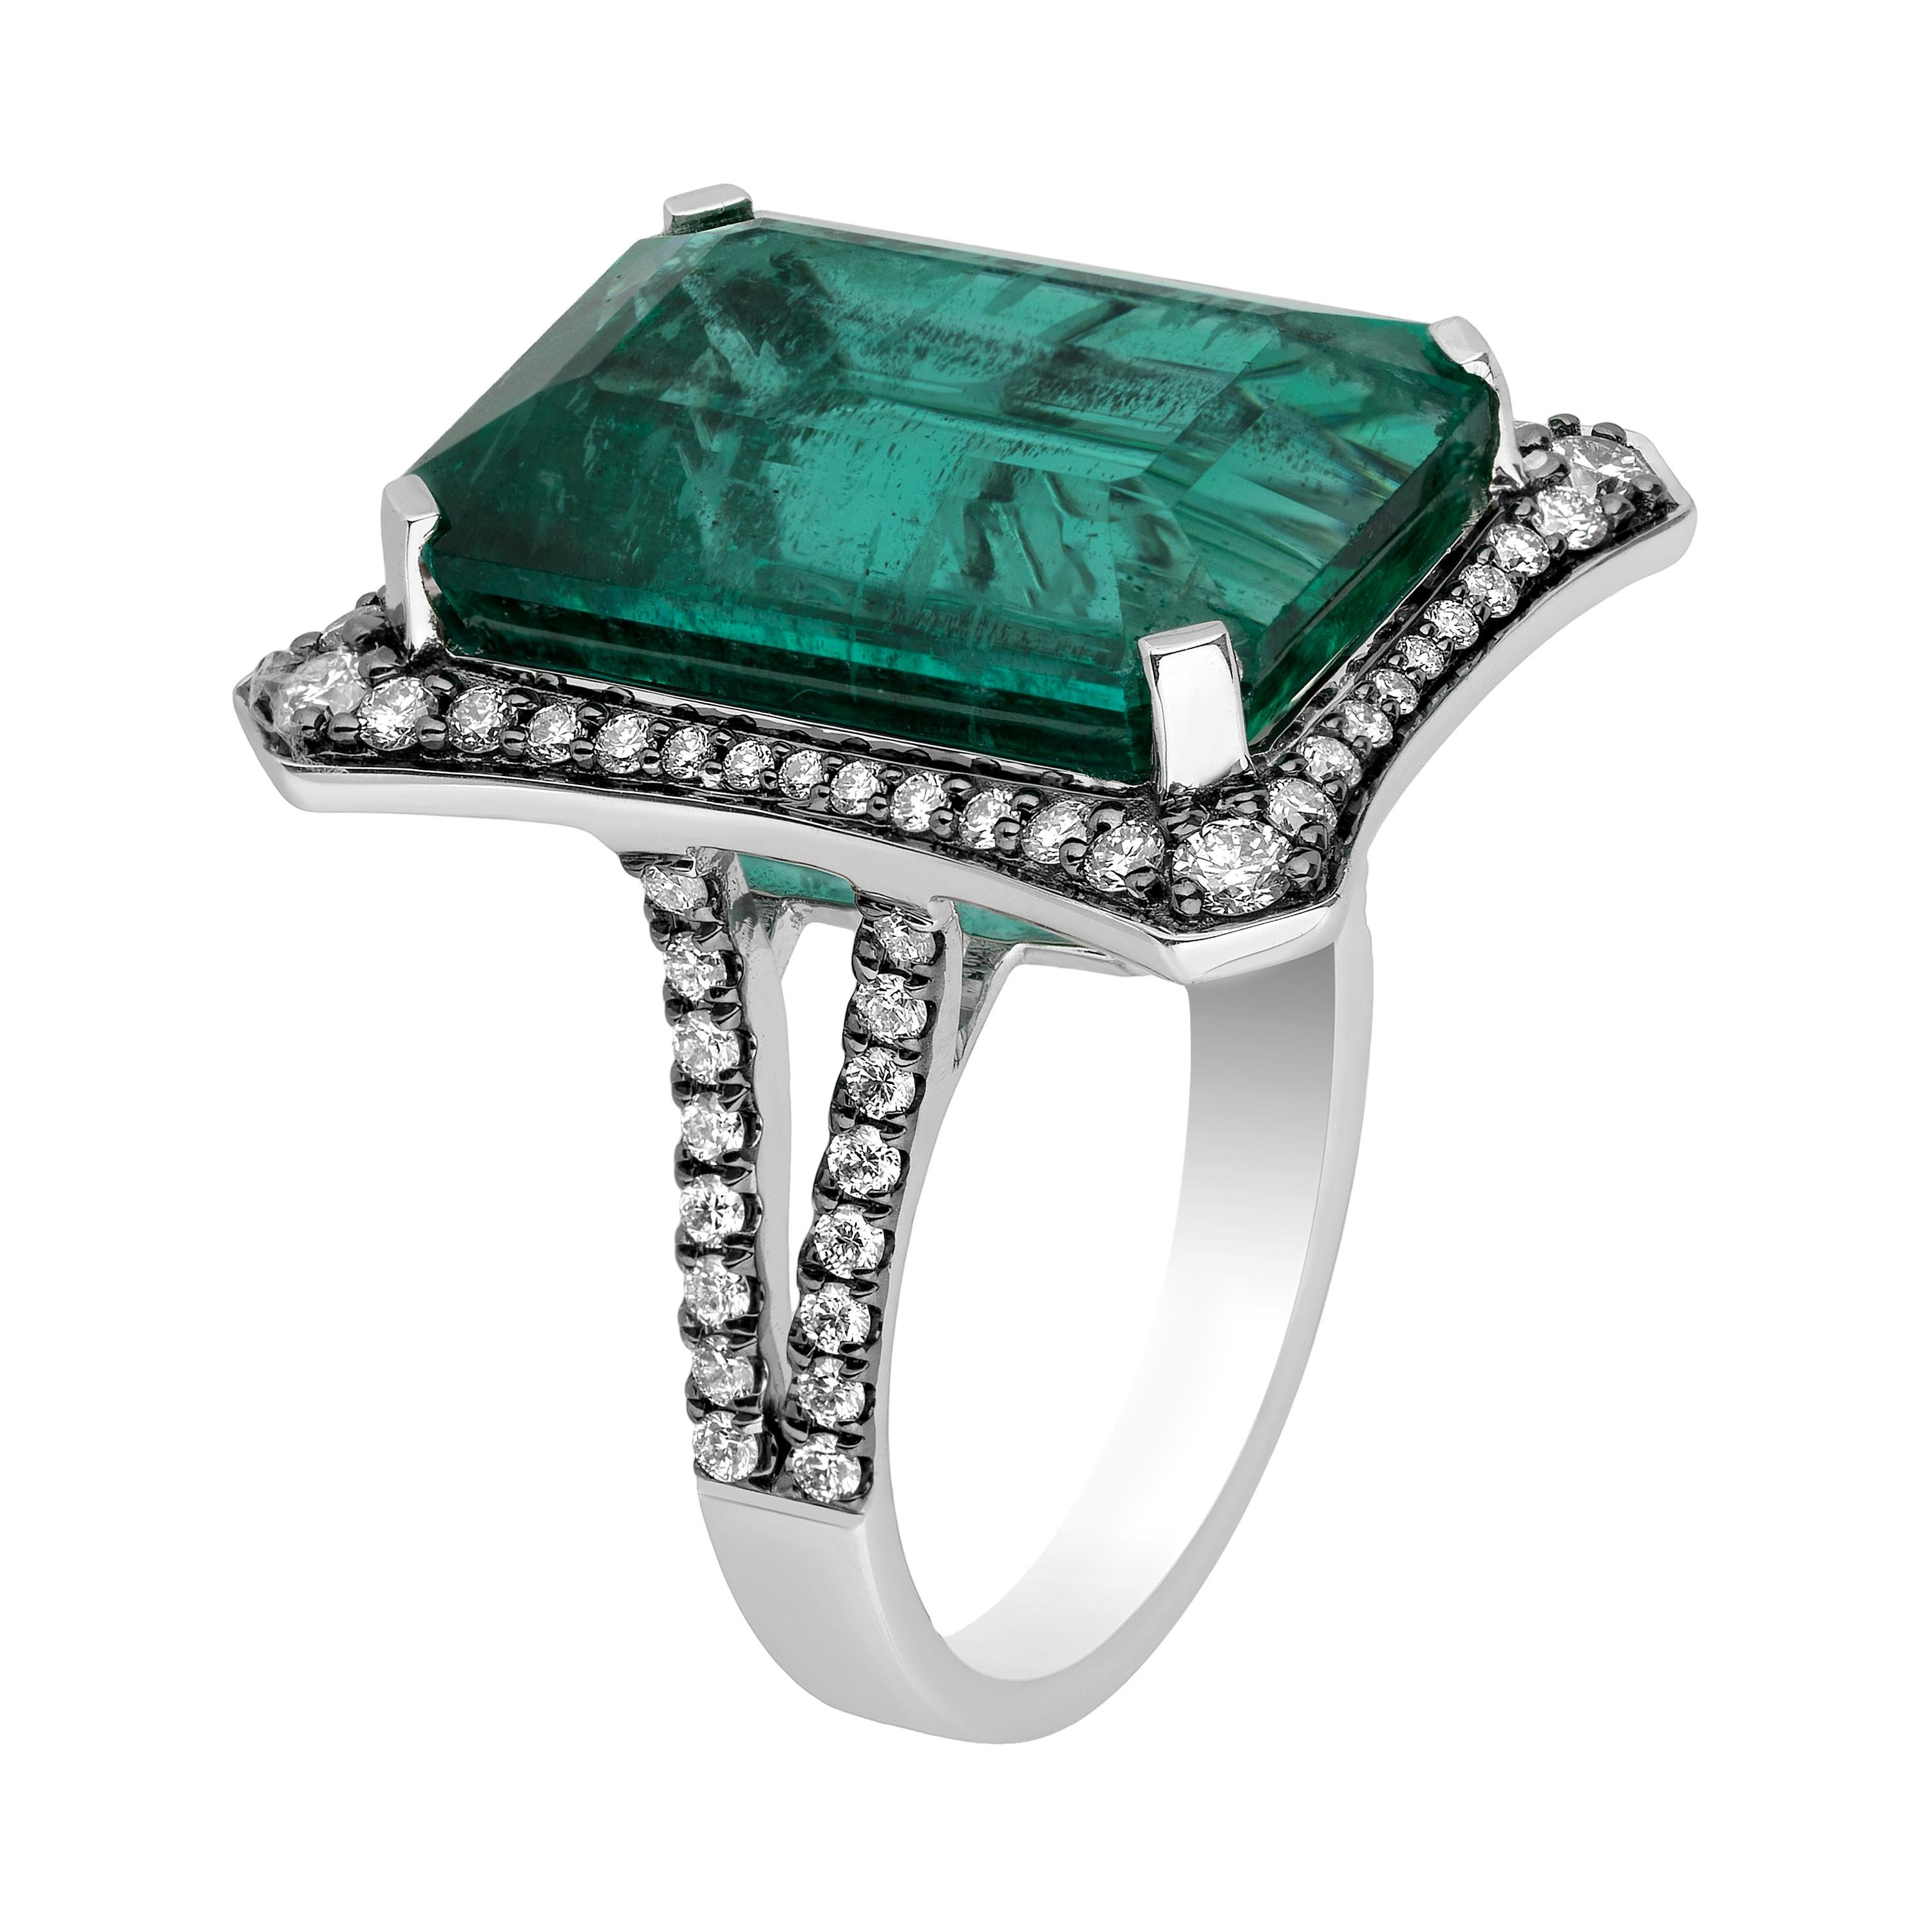 Goshwara Large Emerald with Diamonds Ring